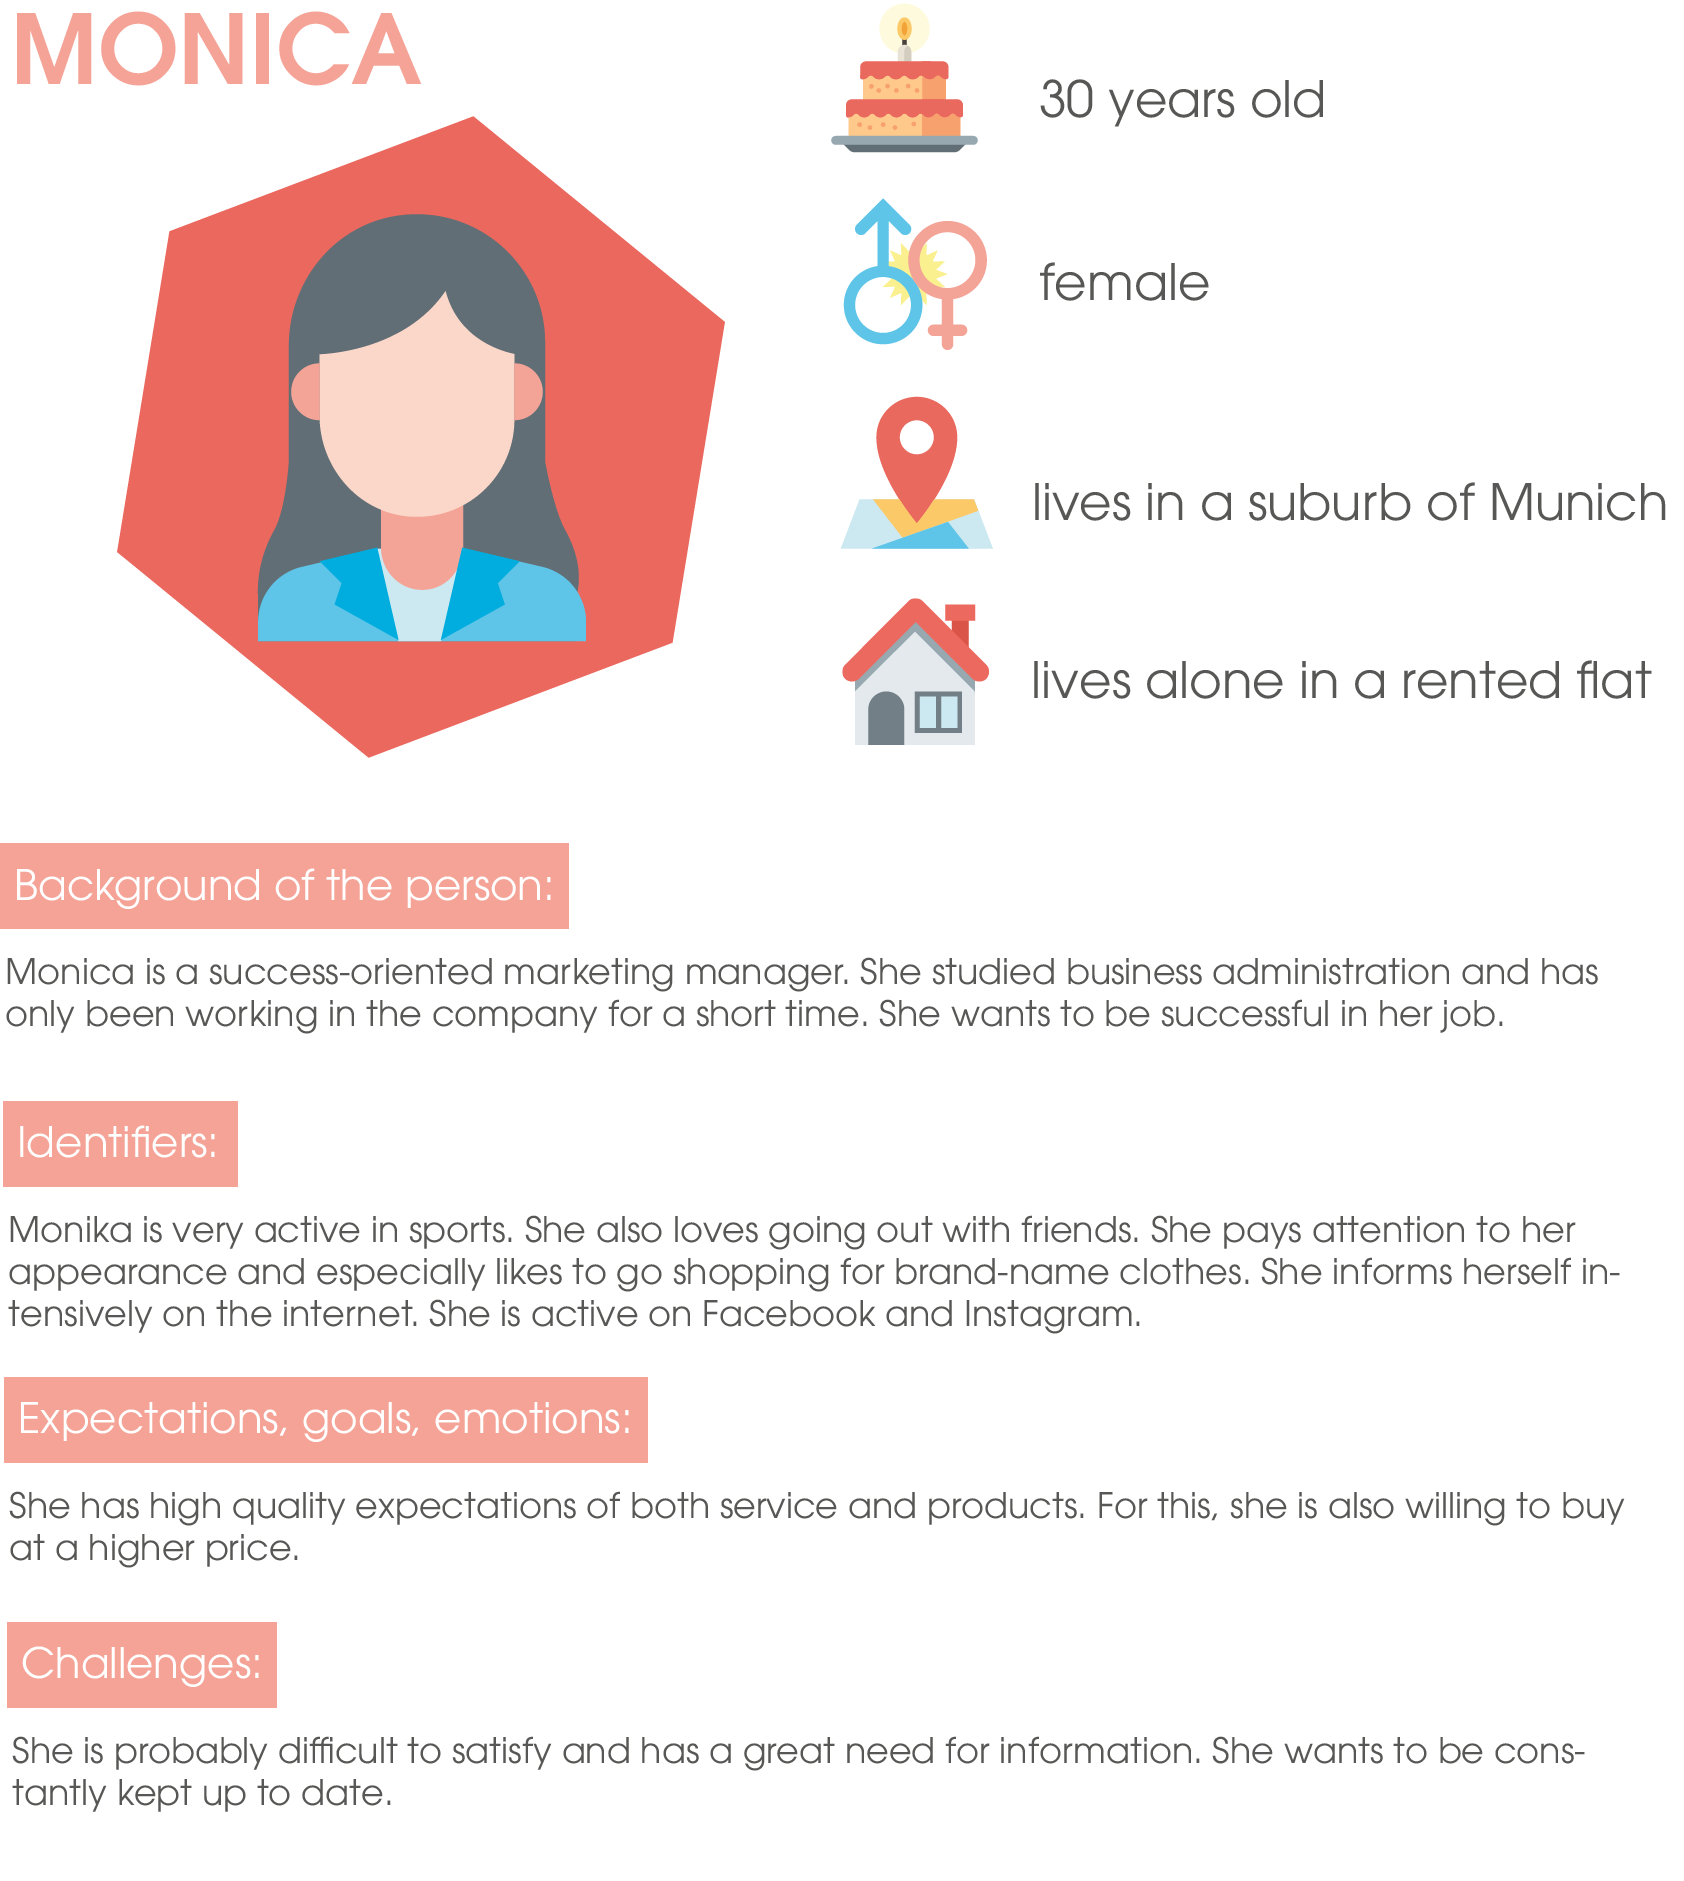 The image shows the complete profile of a fictitious target person - here she is called Monika. Monica is female, 30 years old, lives in a suburb of Munich and lives alone in a rented apartment. The user profile not only addresses demographic facts, but also highlights Monika's background (profession, education, desires and goals), identifiers (hobbies, interests), expectations, goals, and emotions and challenges Monika faces. Through this profile of Monika, a fictitious target person, marketing measures can be better viewed and analyzed.